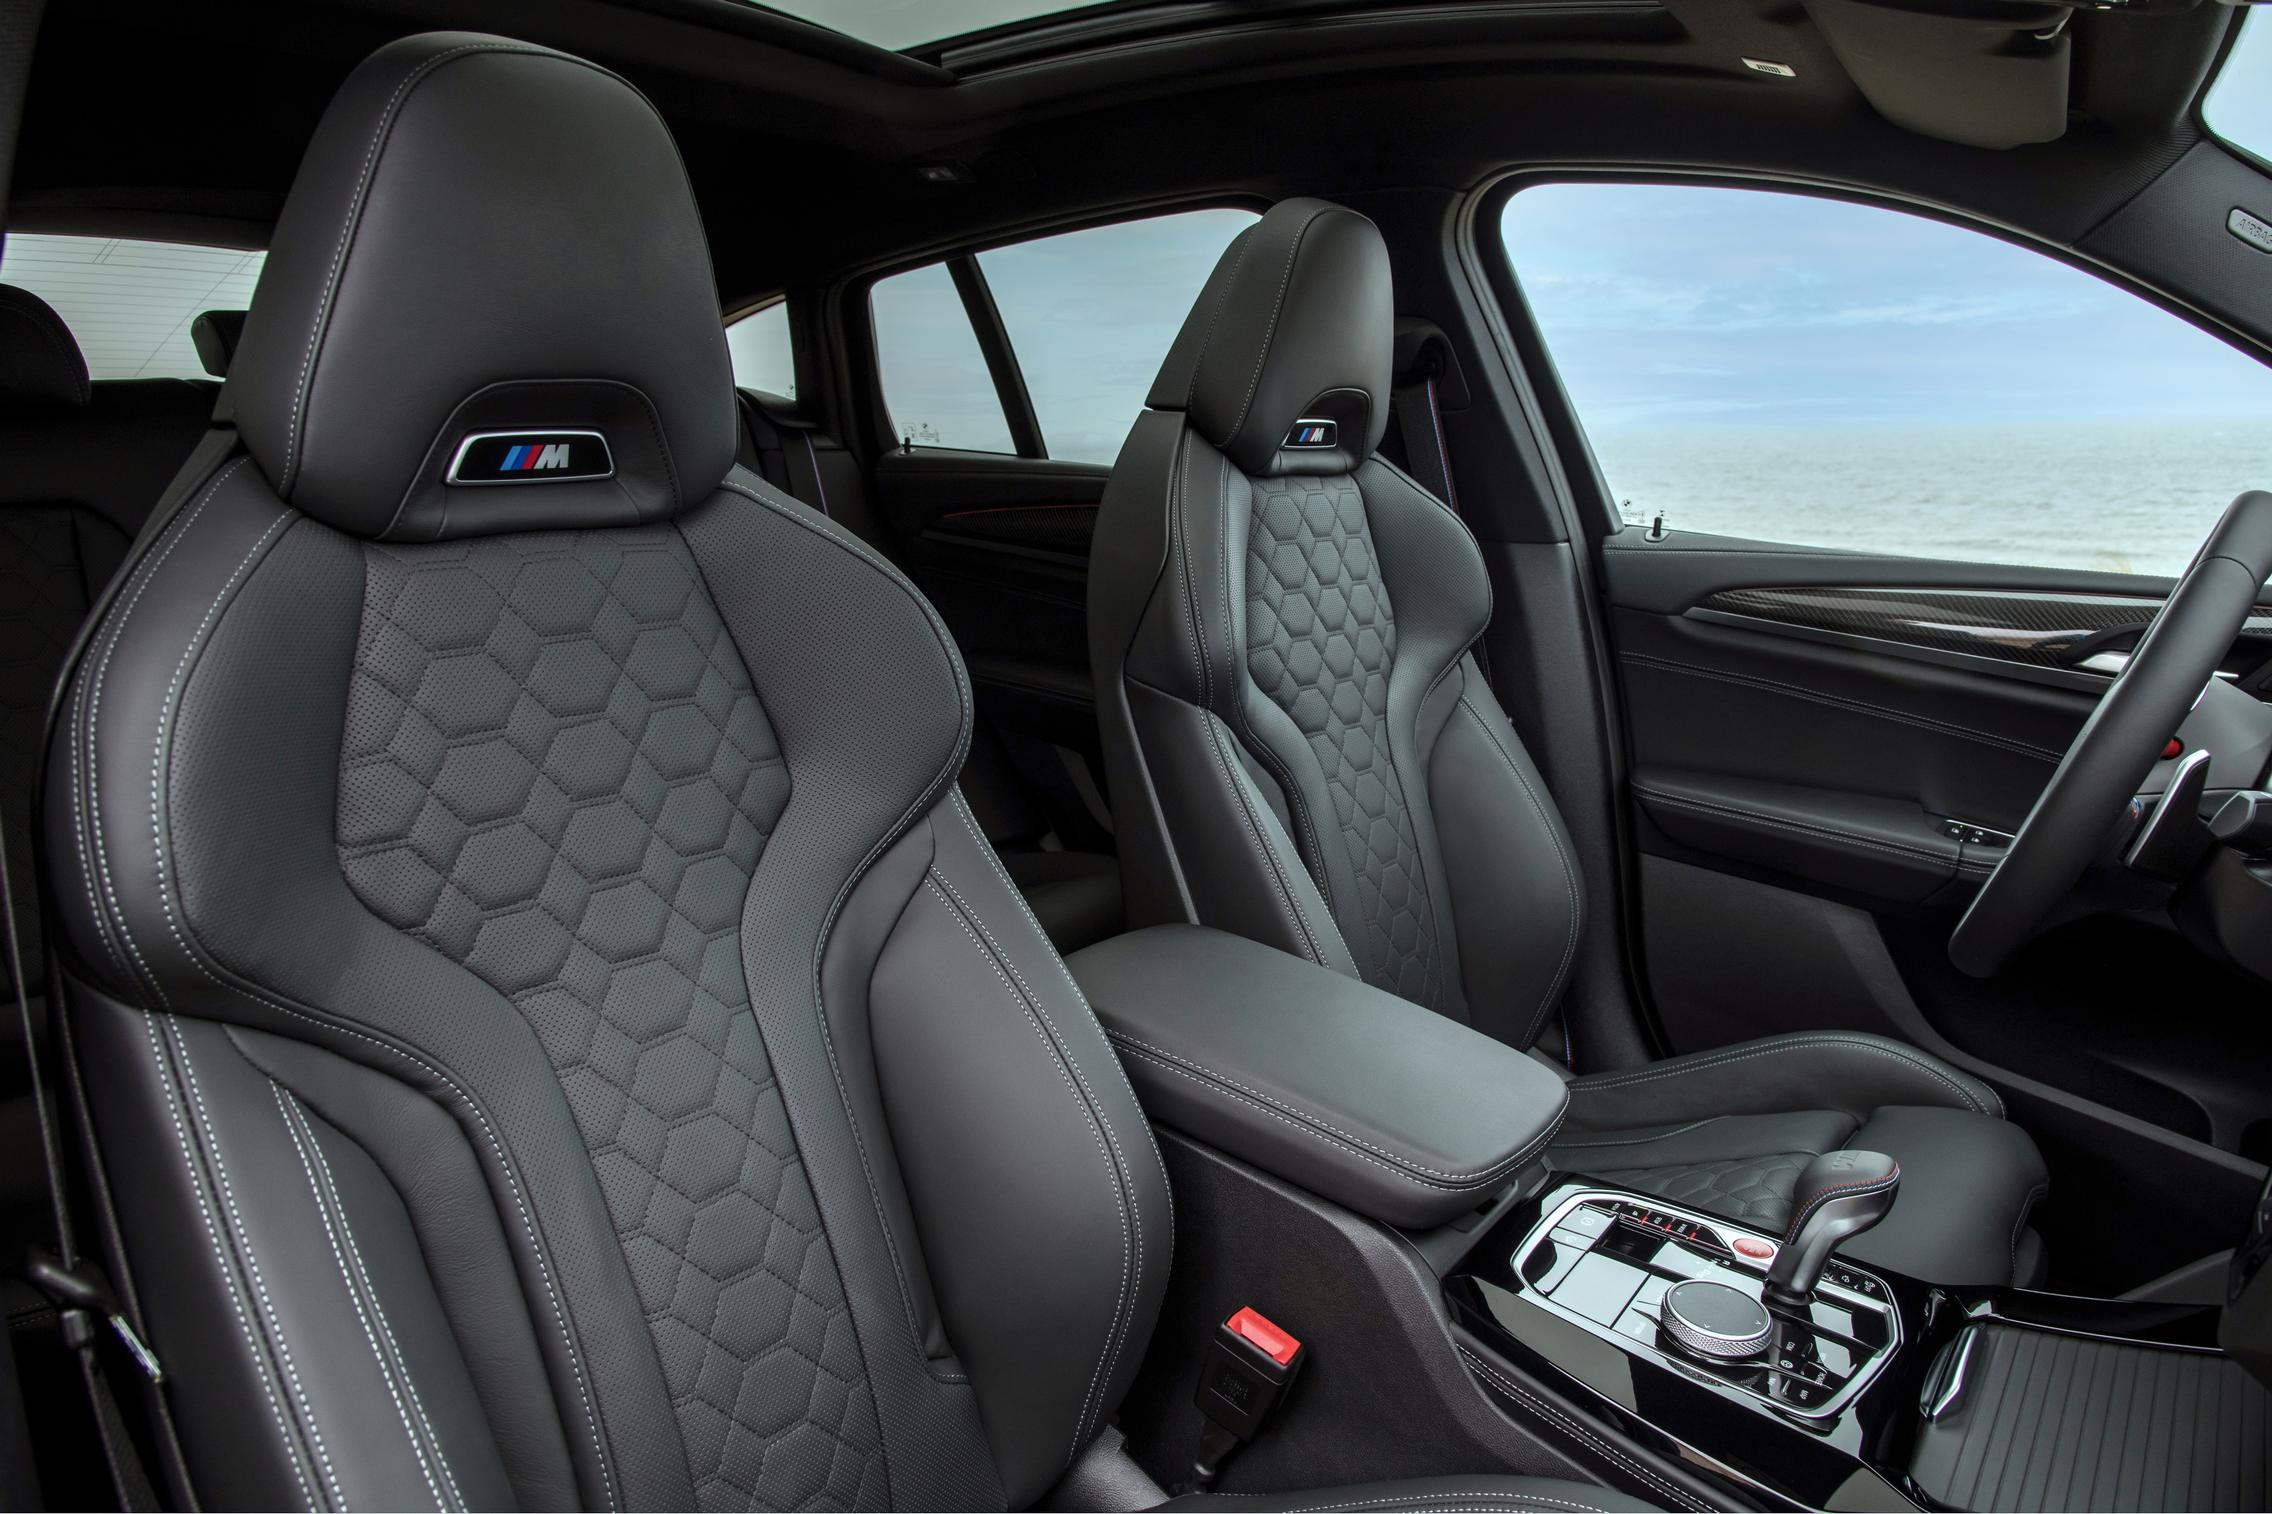 X4 M Competition seats